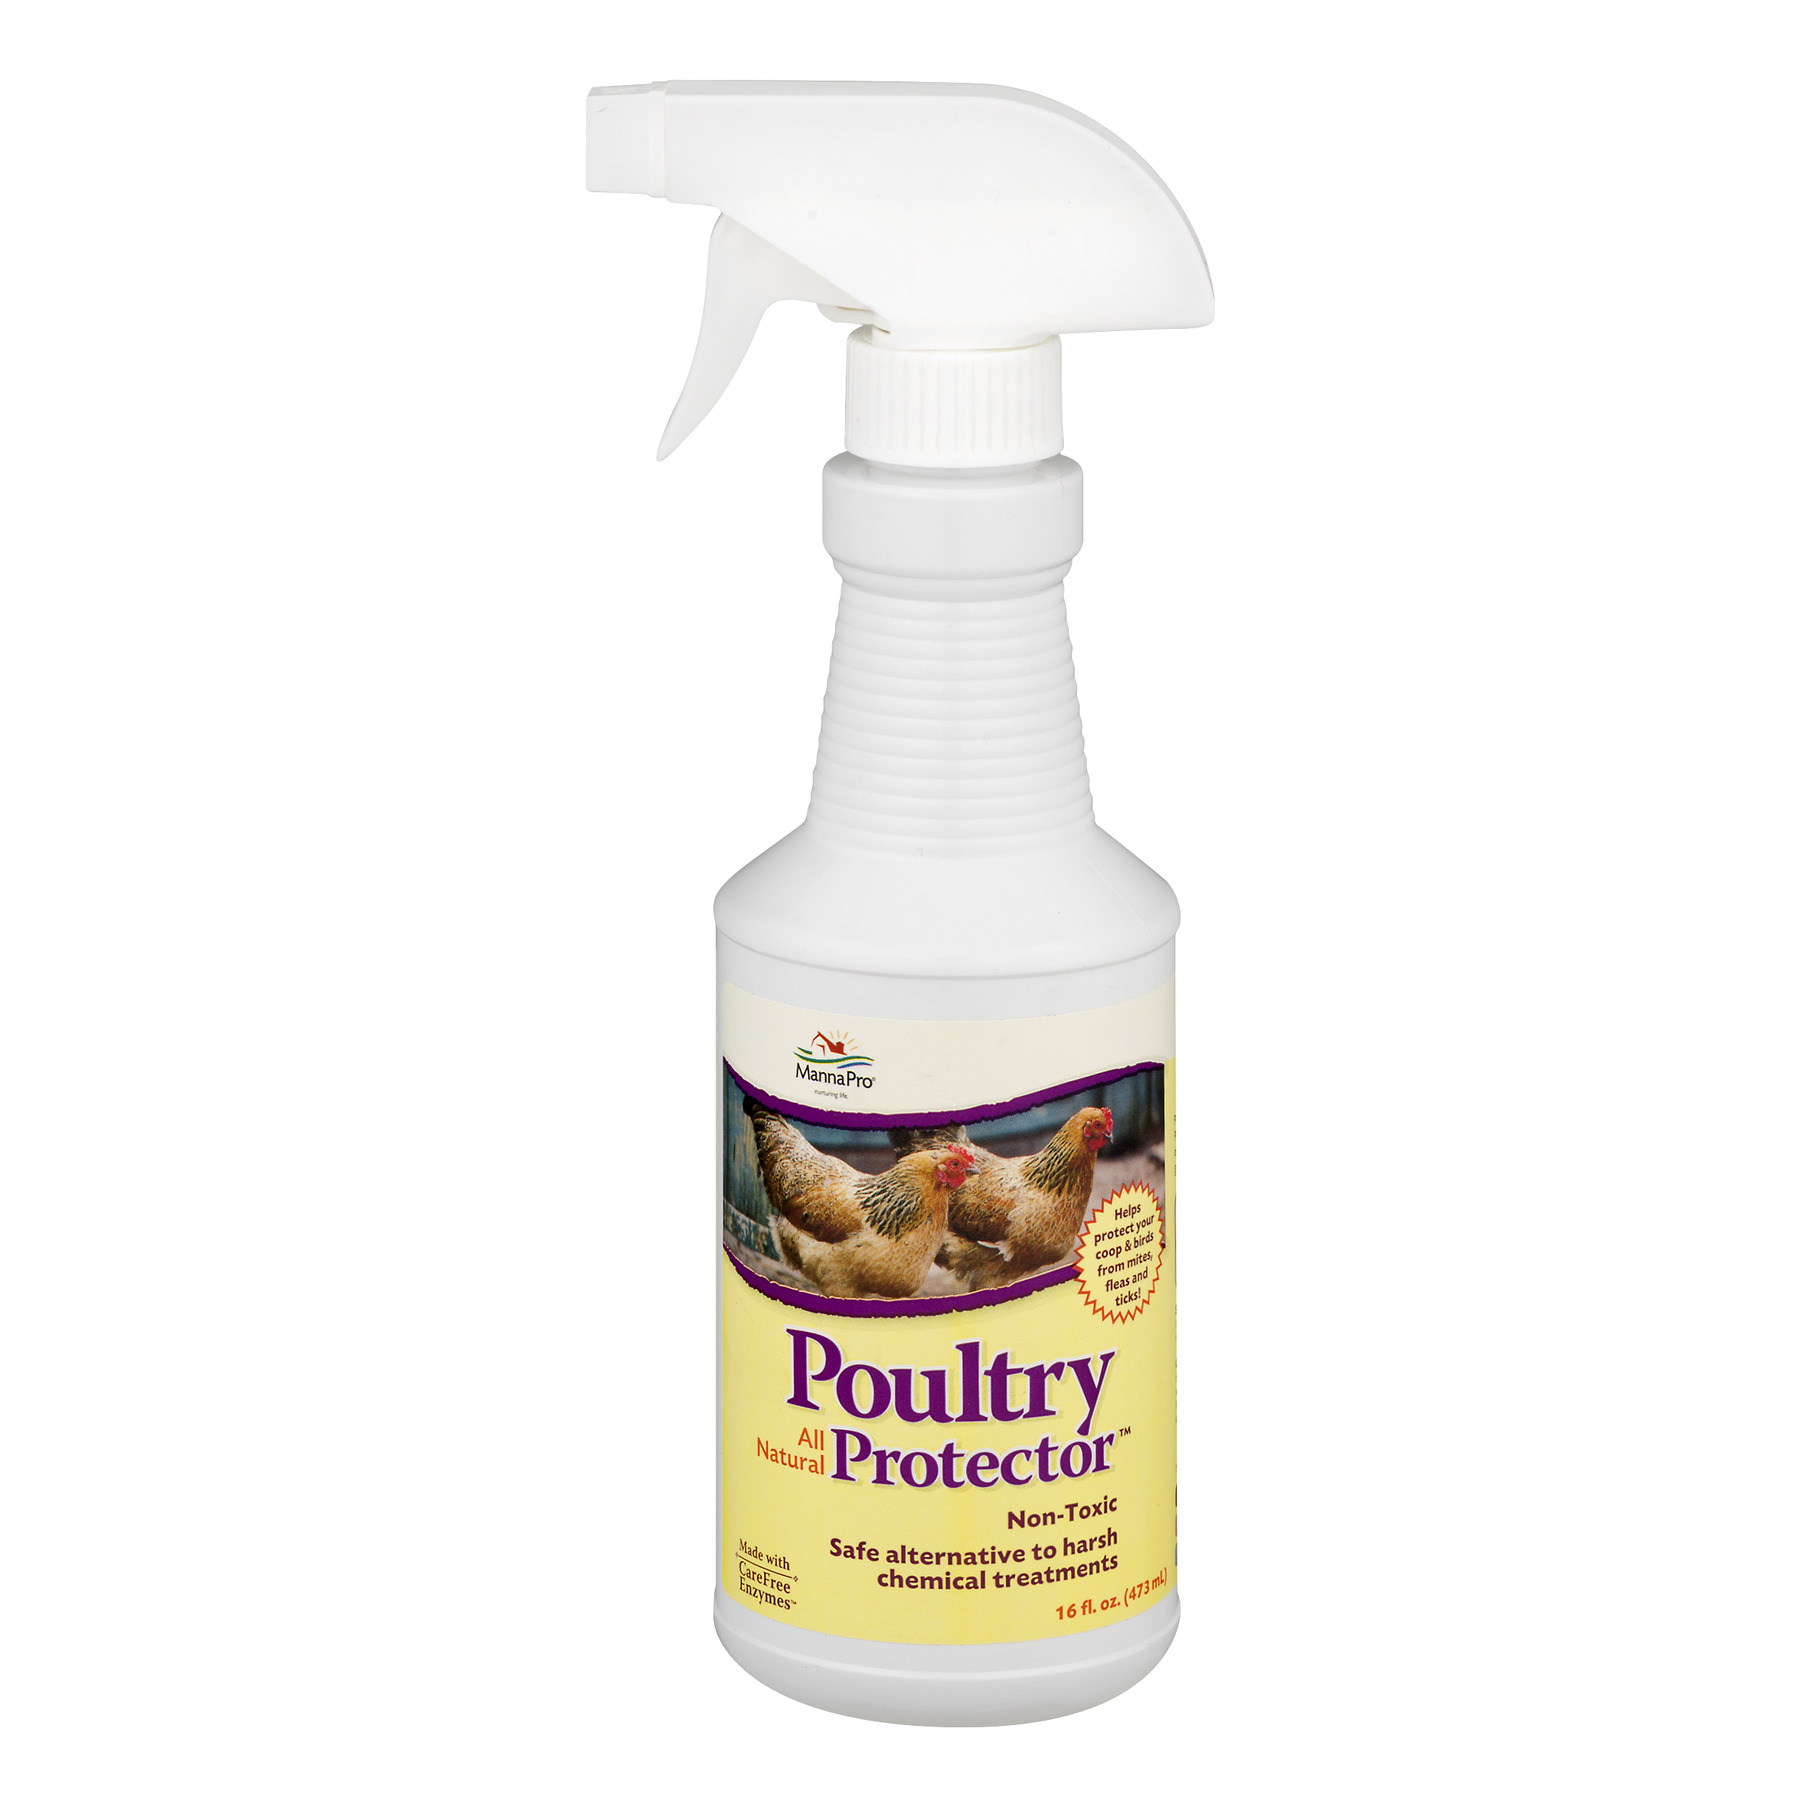 Manna Pro Poultry All Natural Protector, 16 fl oz.